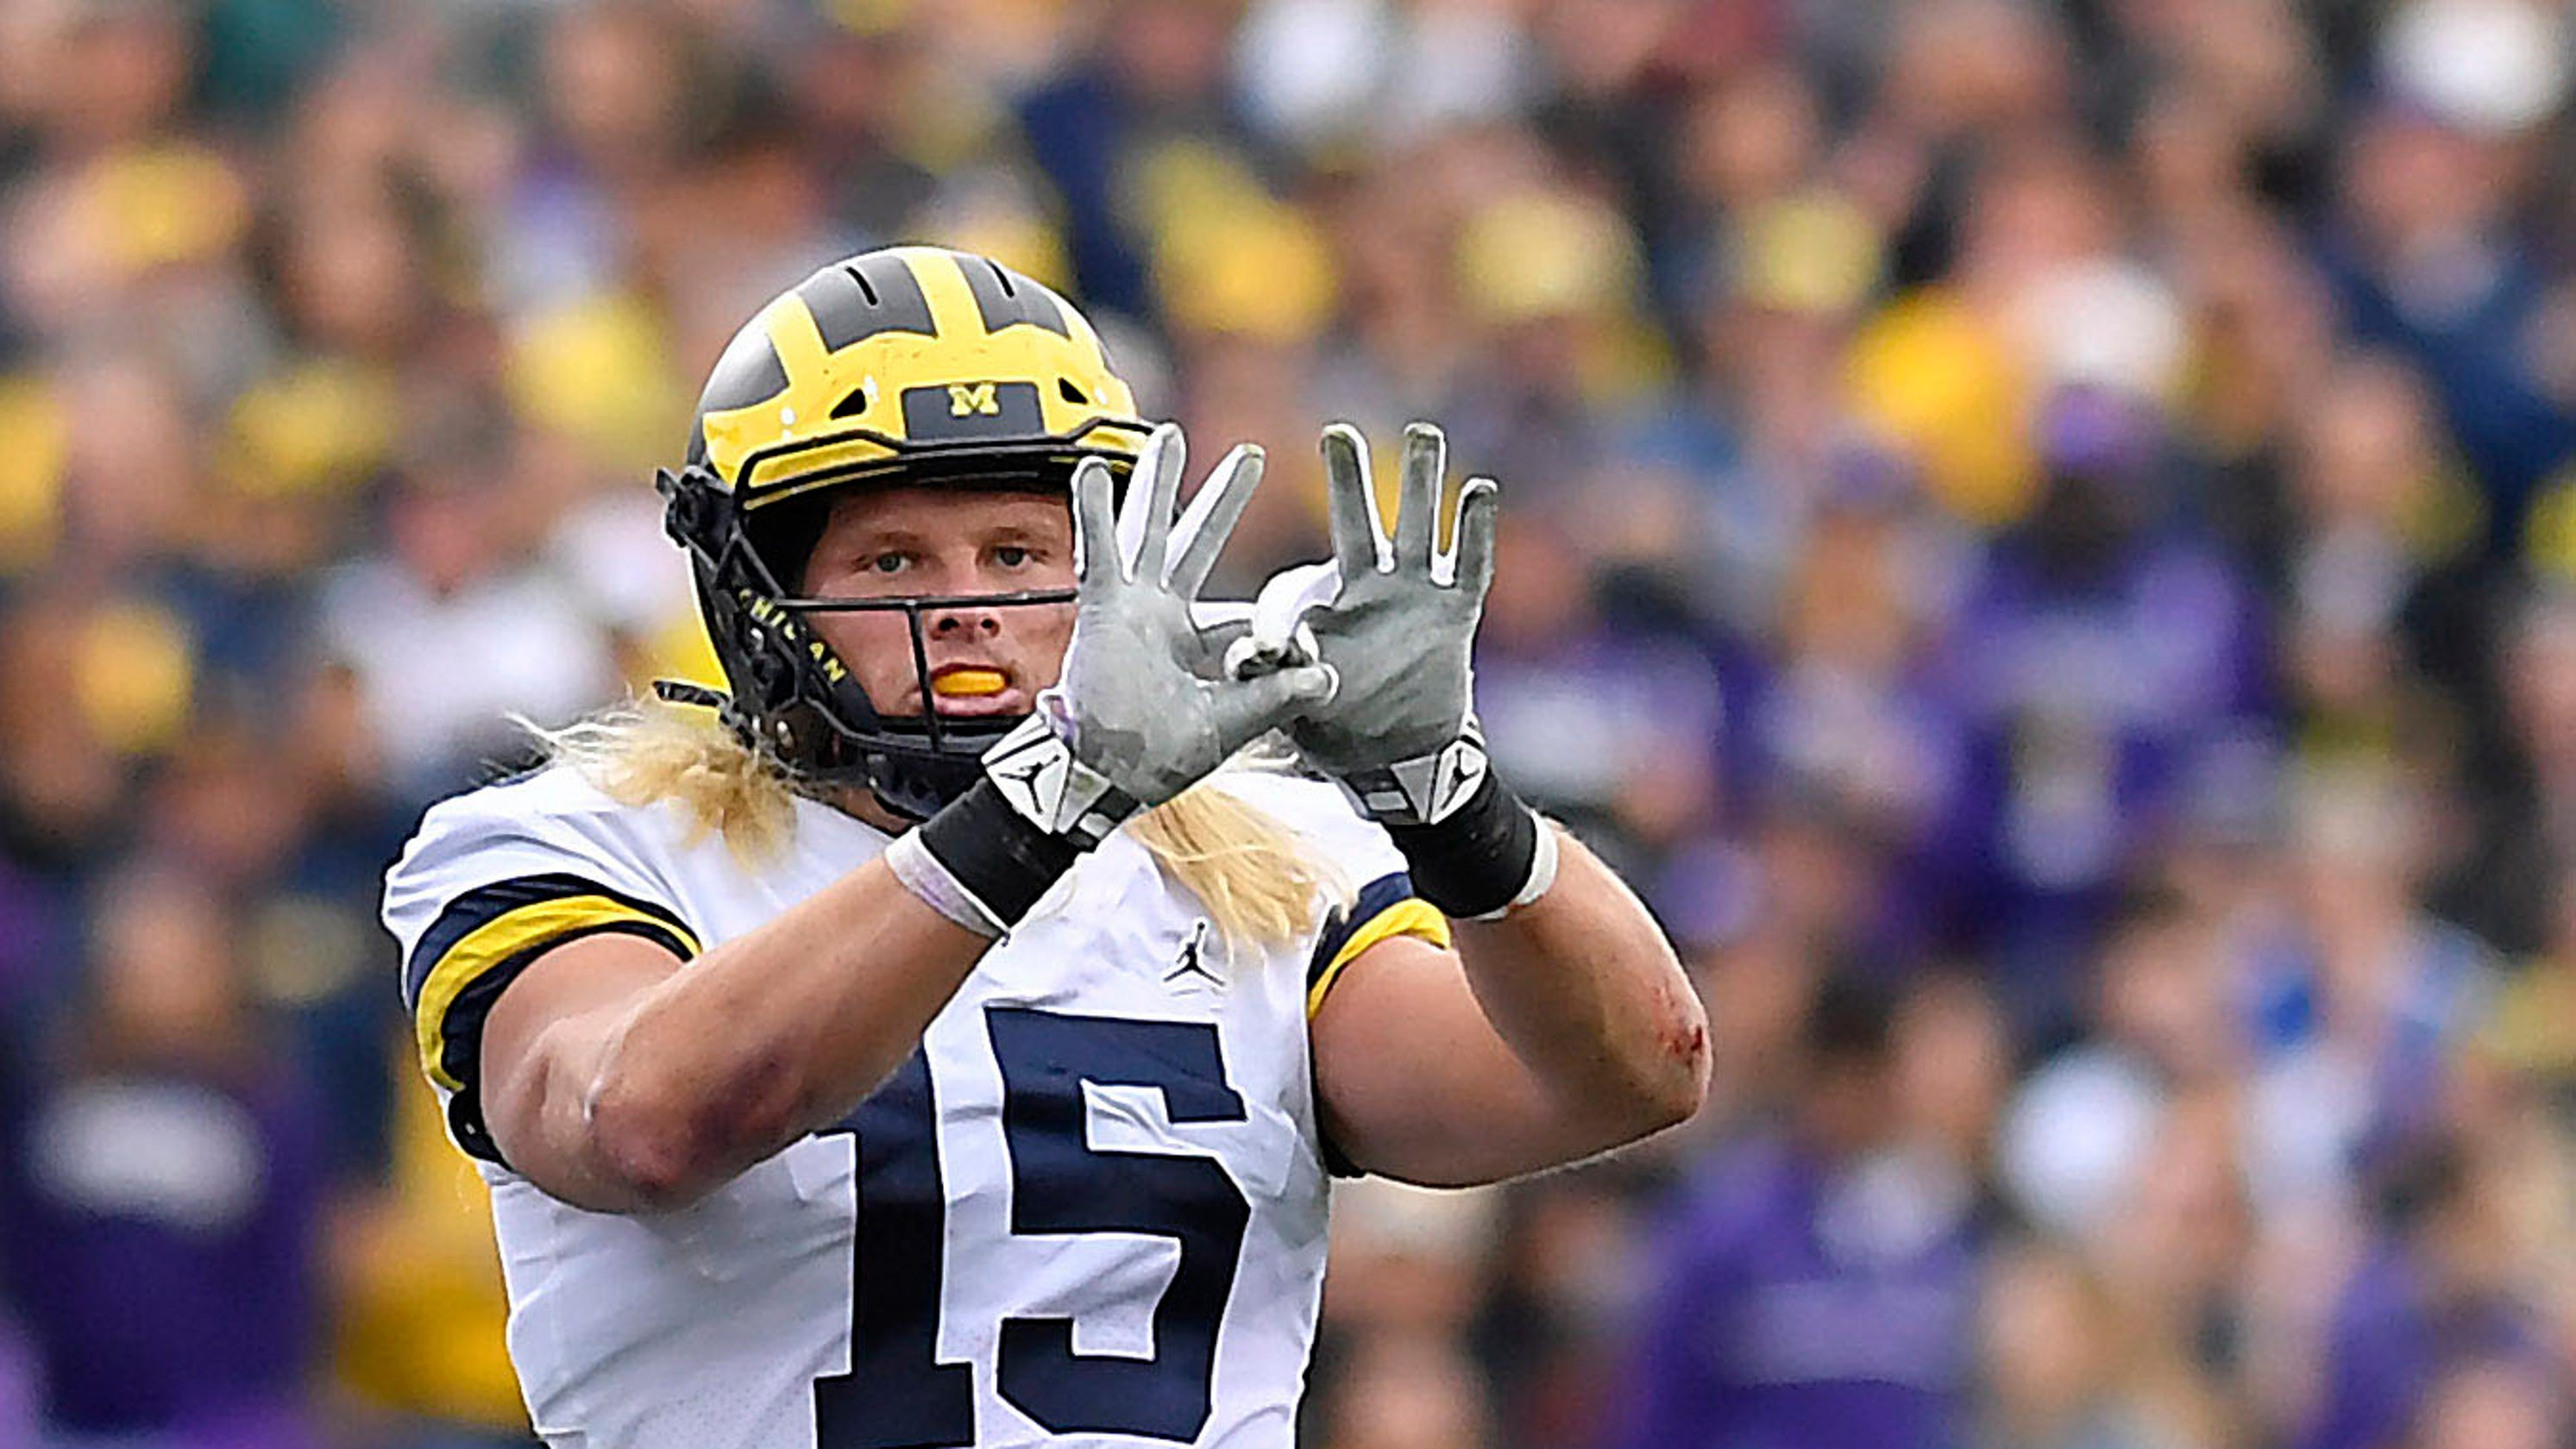 Michigan football s Chase Winovich on near record pace 23d417d26